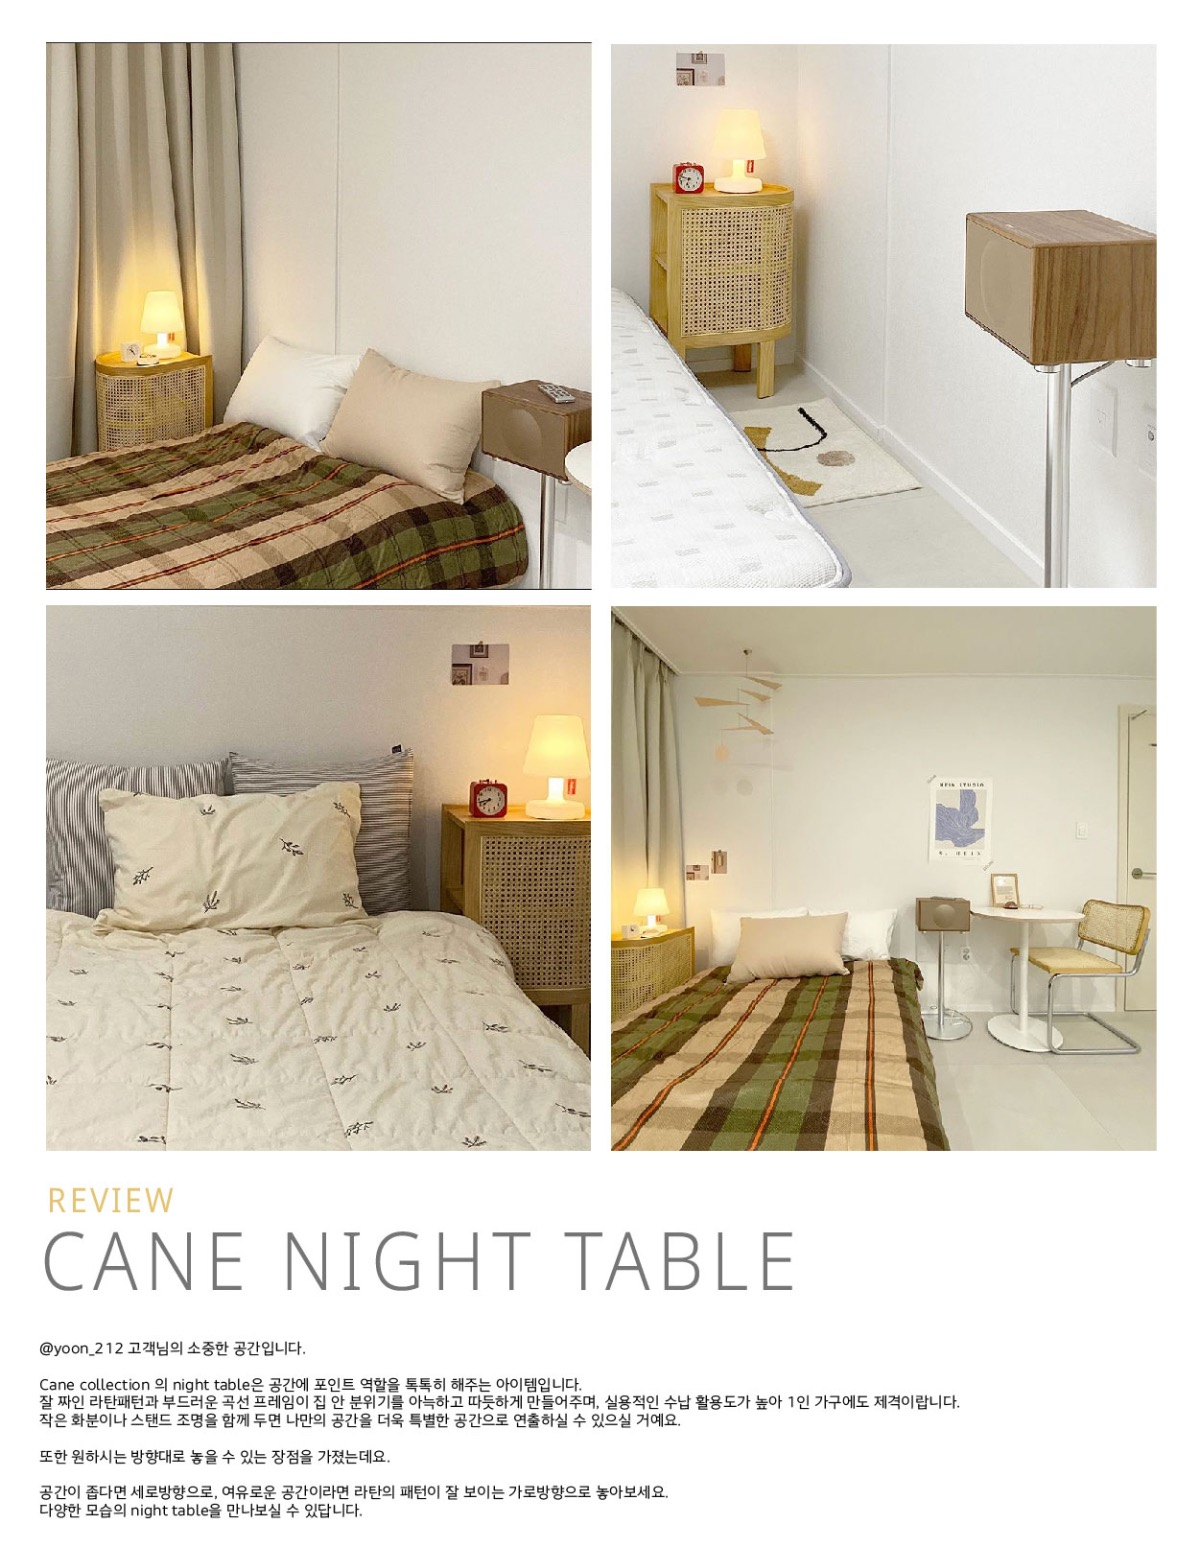 CANE night table, natural